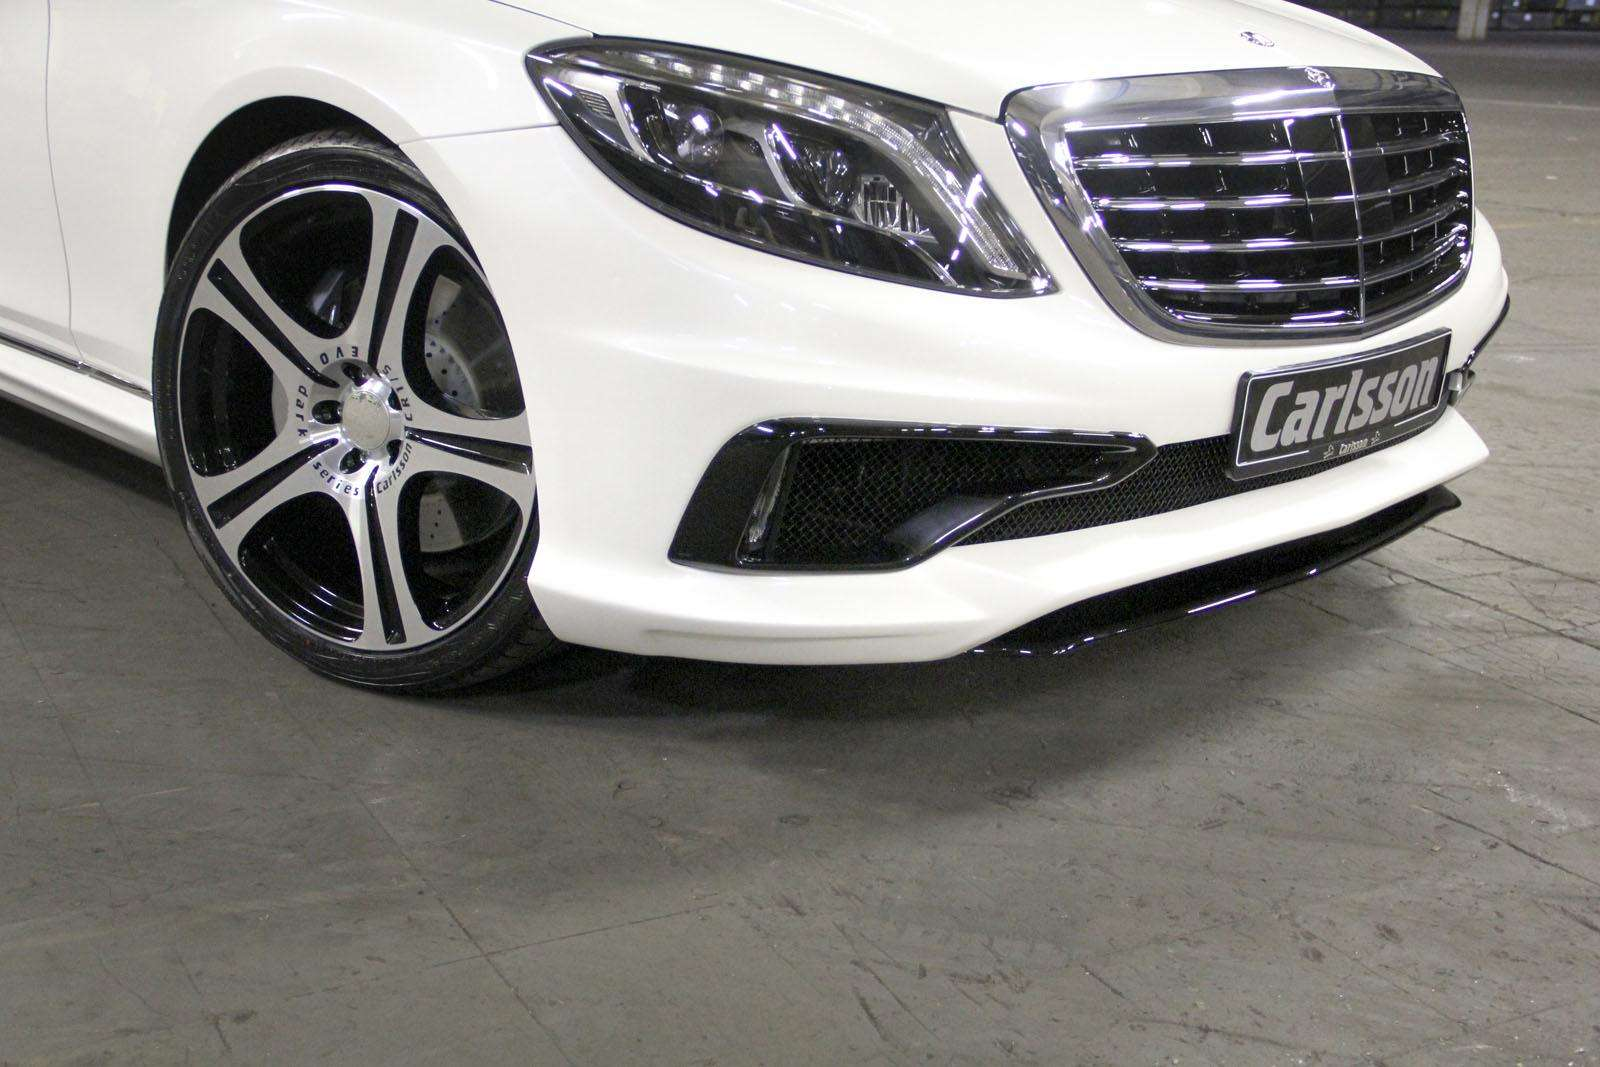 Mercedes s klasa by Carlsson